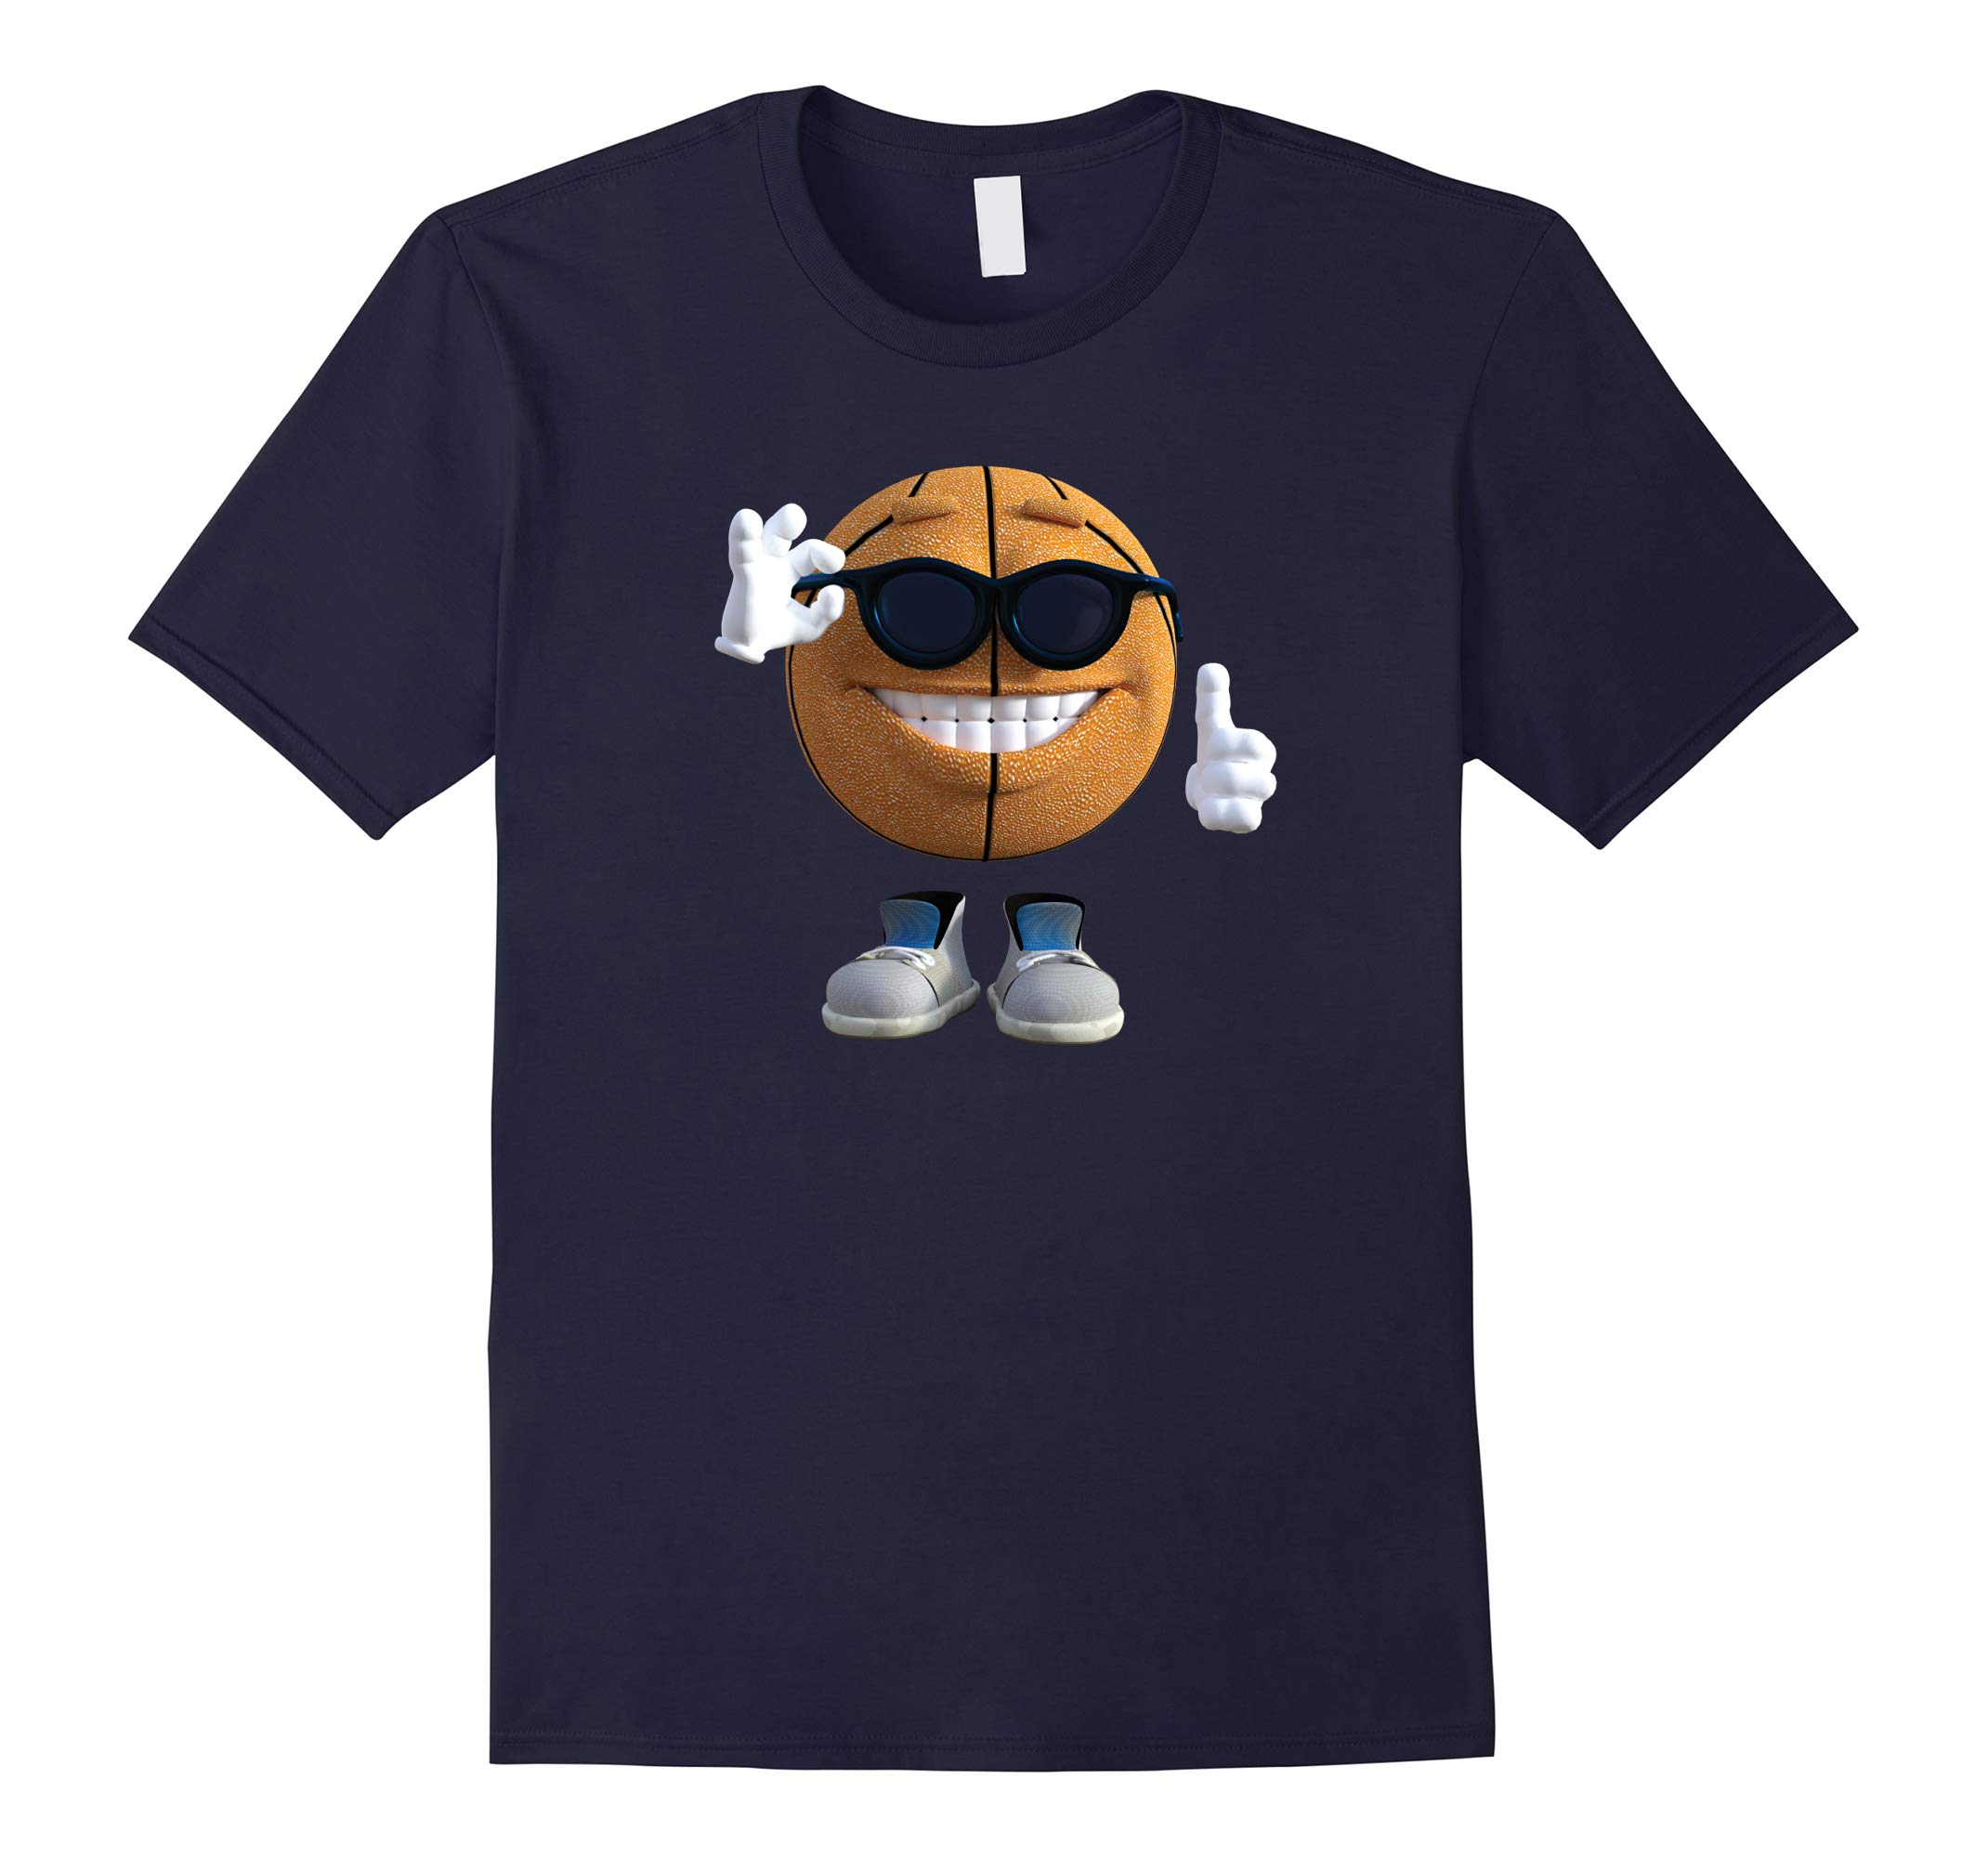 Kids Basketball Tshirt - Youth Basketball Apparel-RT